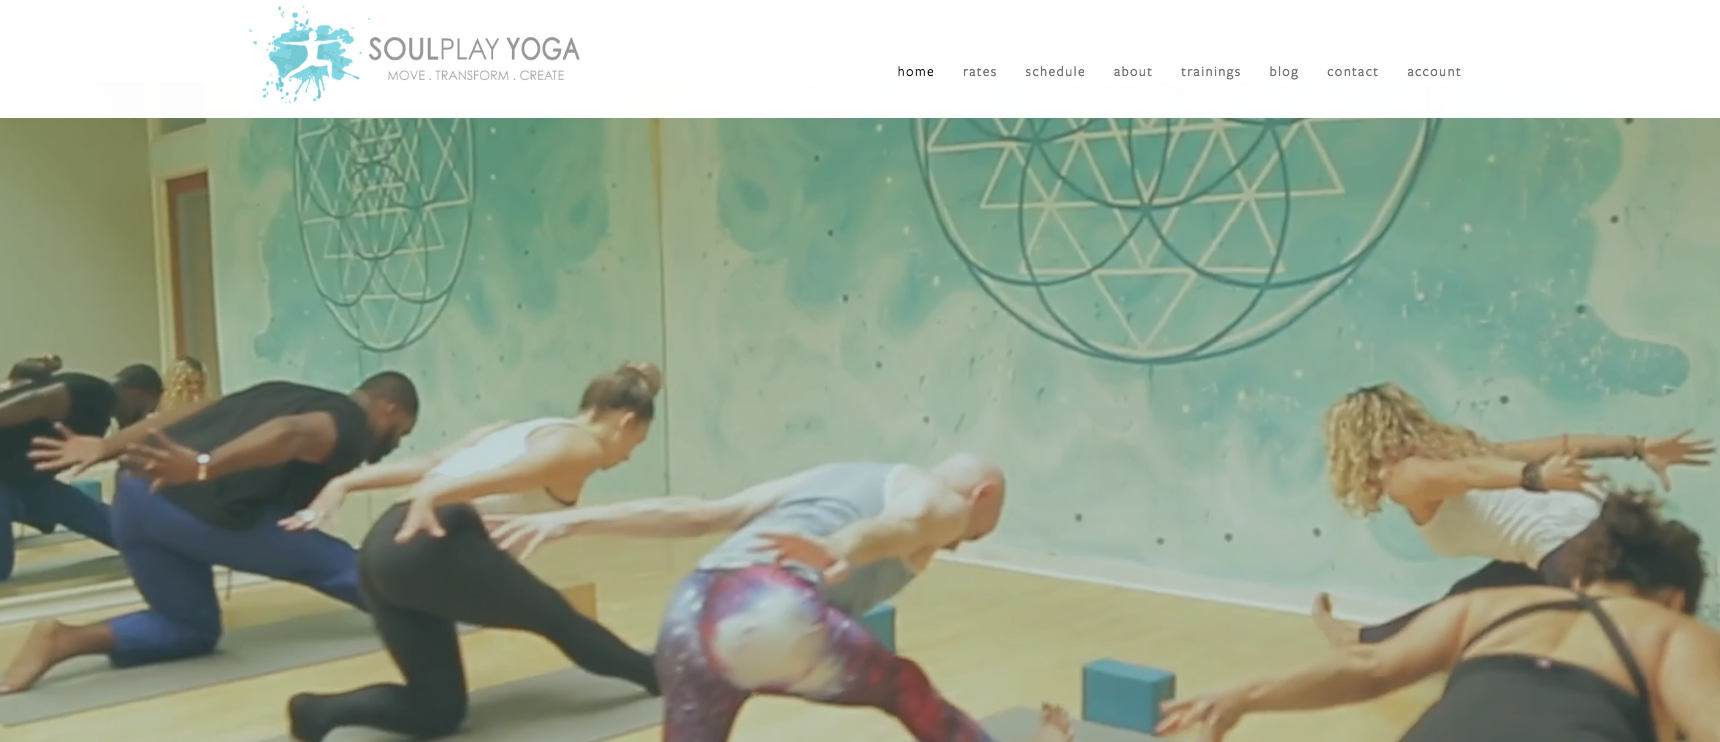 SoulPlay Yoga